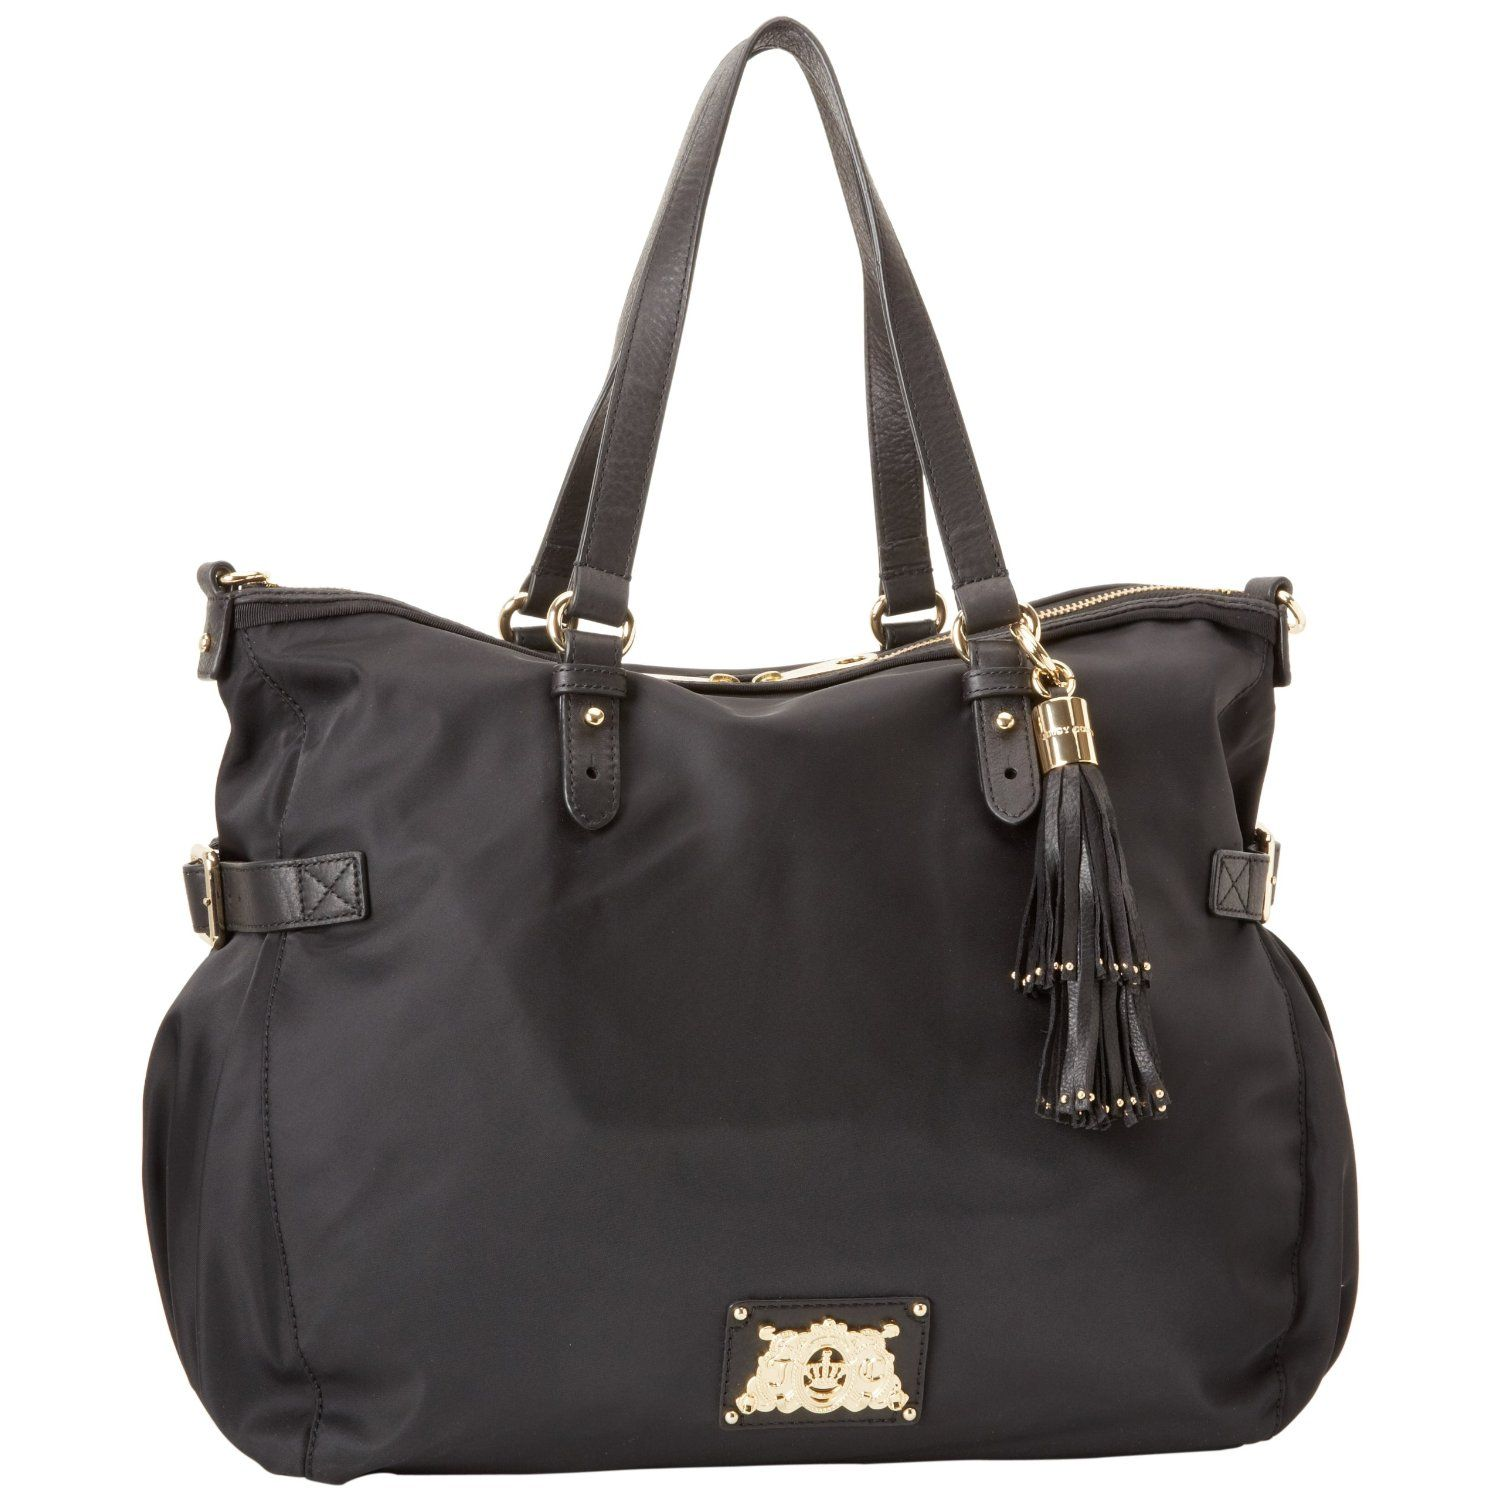 Juicy Couture Easy Everyday Nylon Lauryn Tote Bag ... Diaper bag only in  navy 3ffe6ccf87